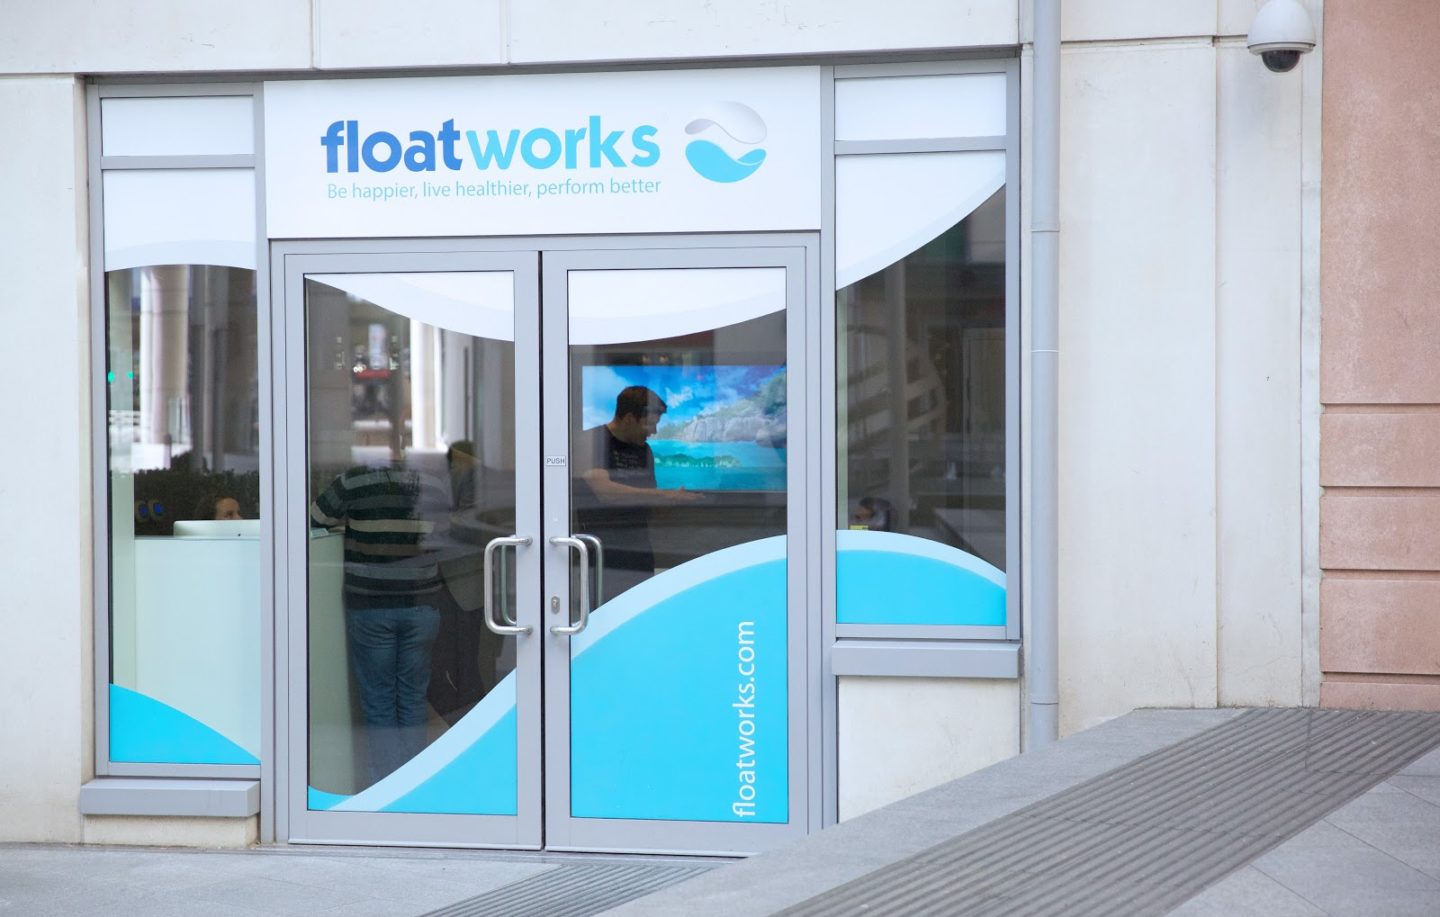 Floatworks Vauxhall - Photo Credit: Leena Ranchod